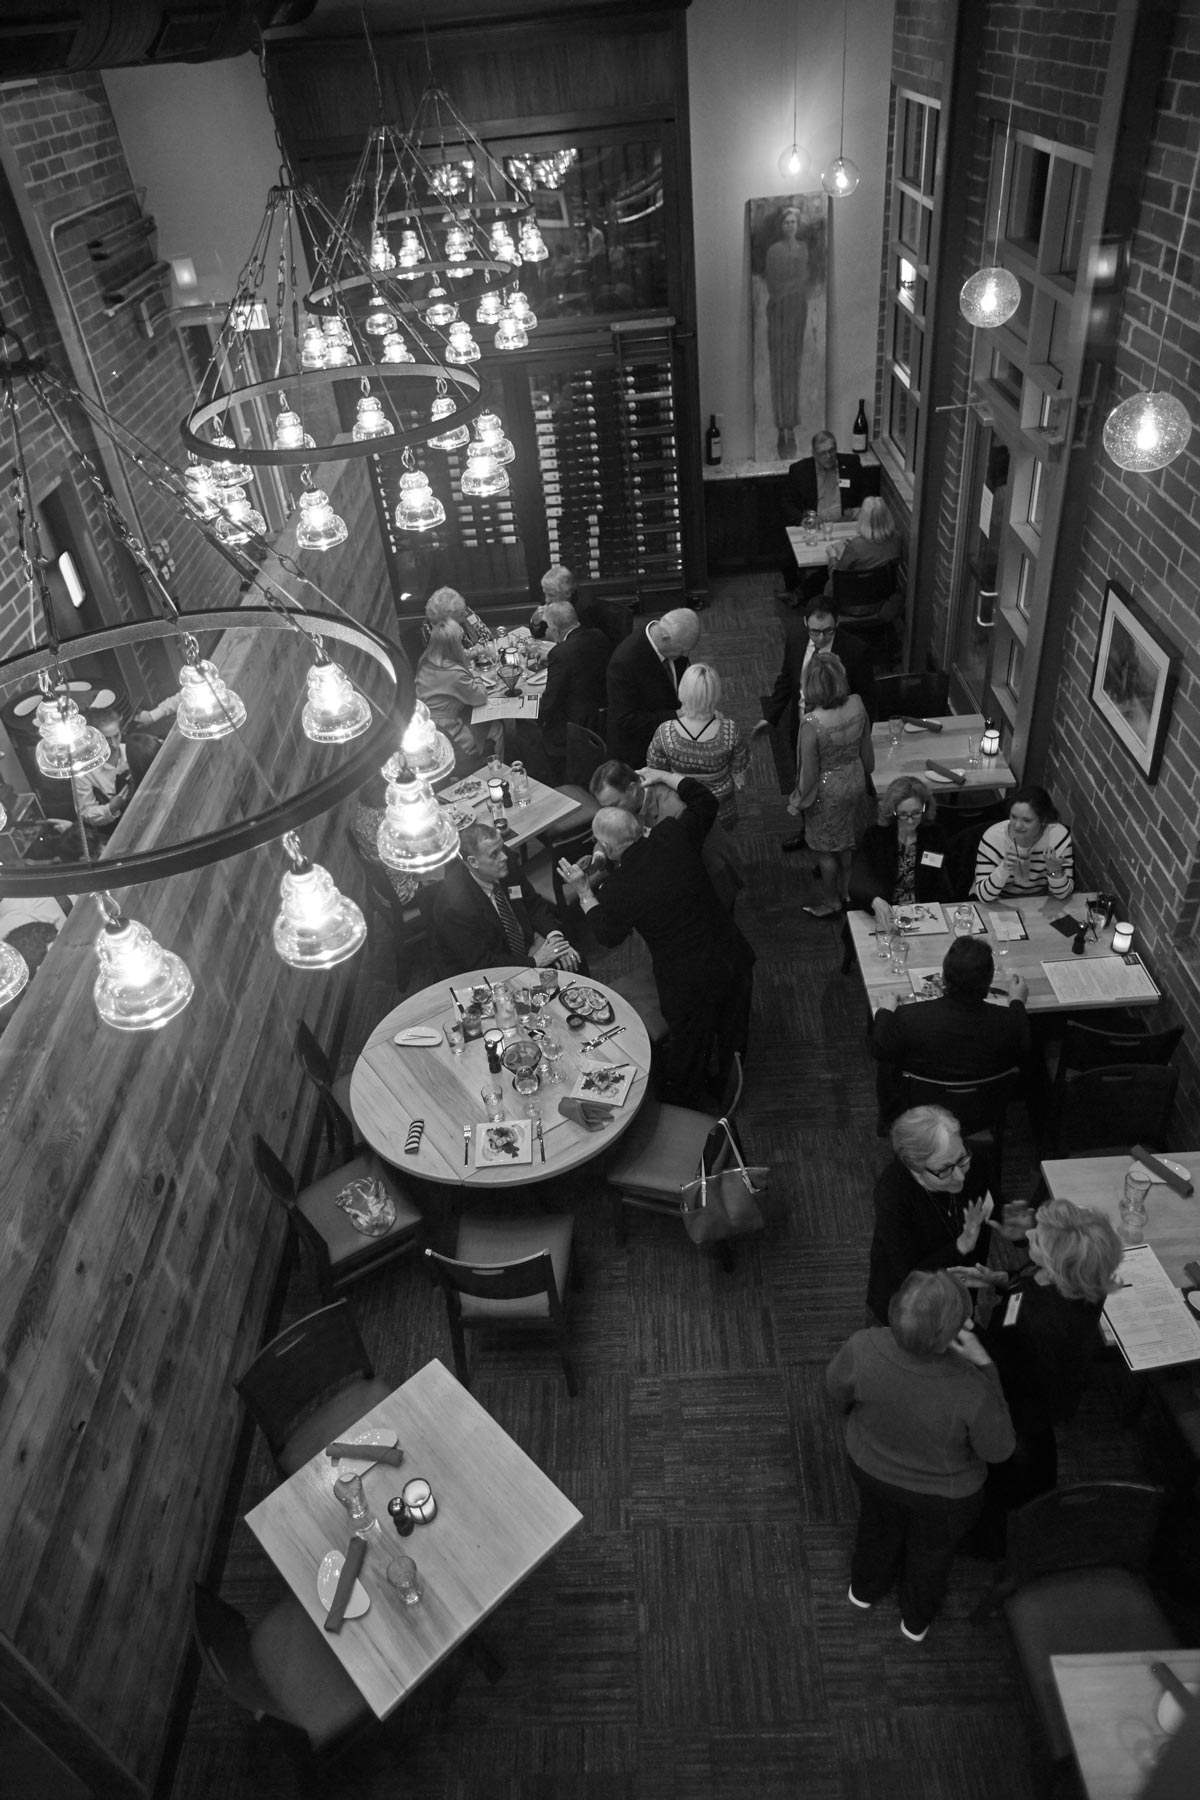 Interior photo in black and white of busy restaurant dining area